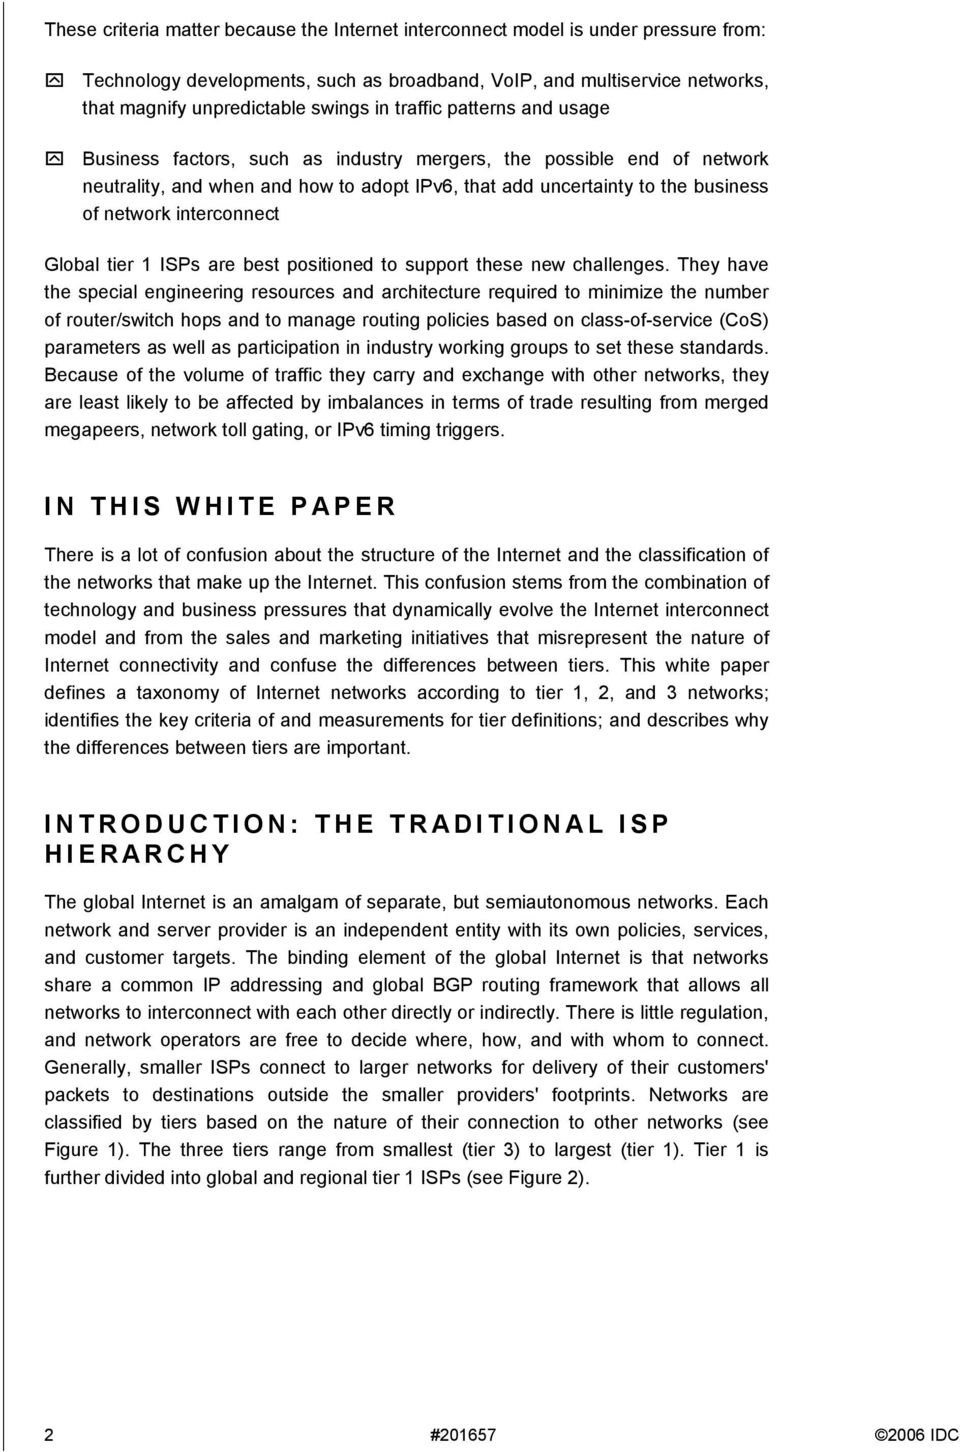 Business factors, such as industry mergers, the possible end of network neutrality, and when and how to adopt IPv6, that add uncertainty to the business of network interconnect Global tier 1 s are